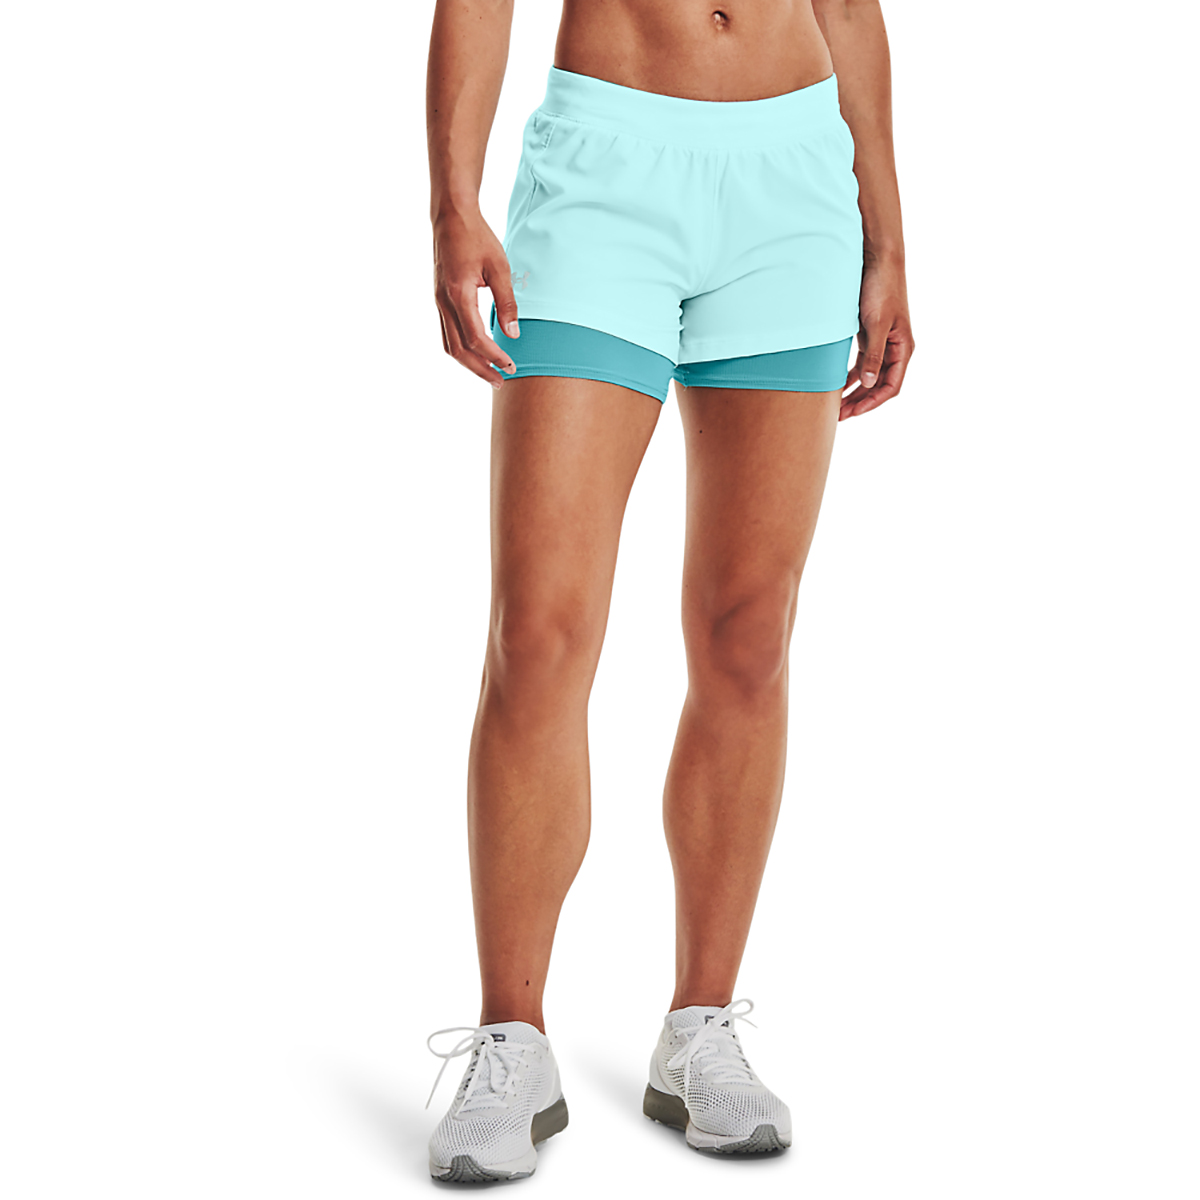 Women's Under Armour Isochill Run 2 in 1 Short - Color: Breeze Cosmos - Size: XS, Breeze Cosmos, large, image 1